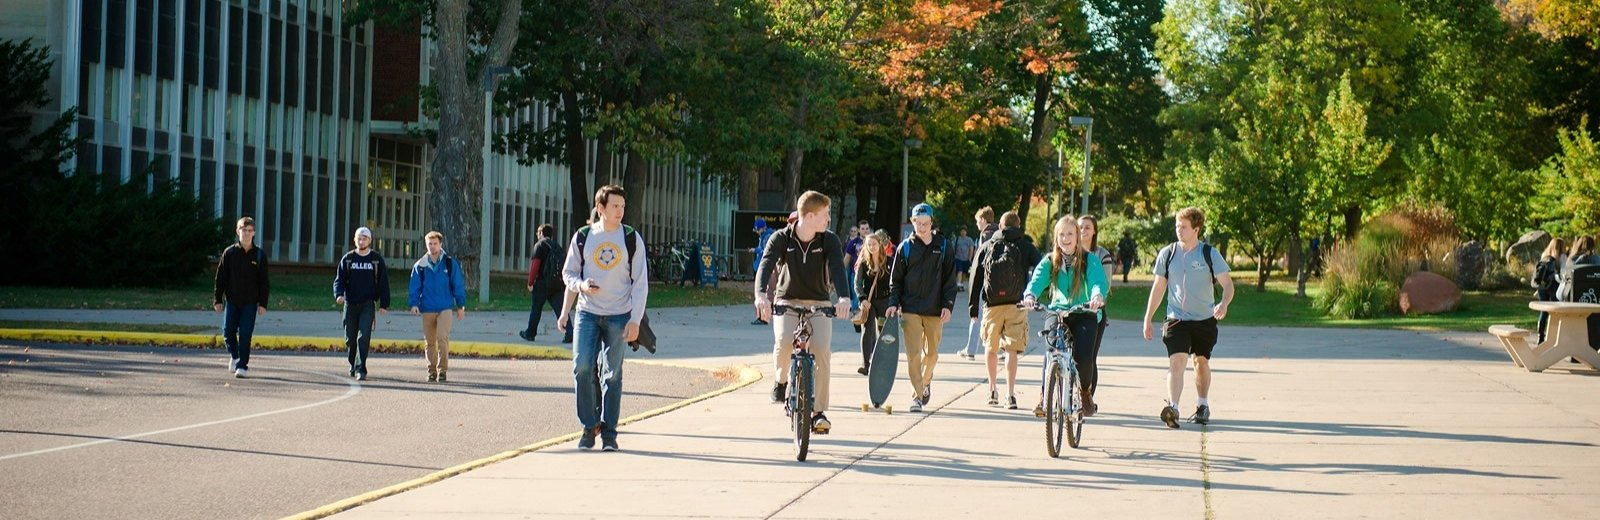 Students return to the campus of Michigan Tech